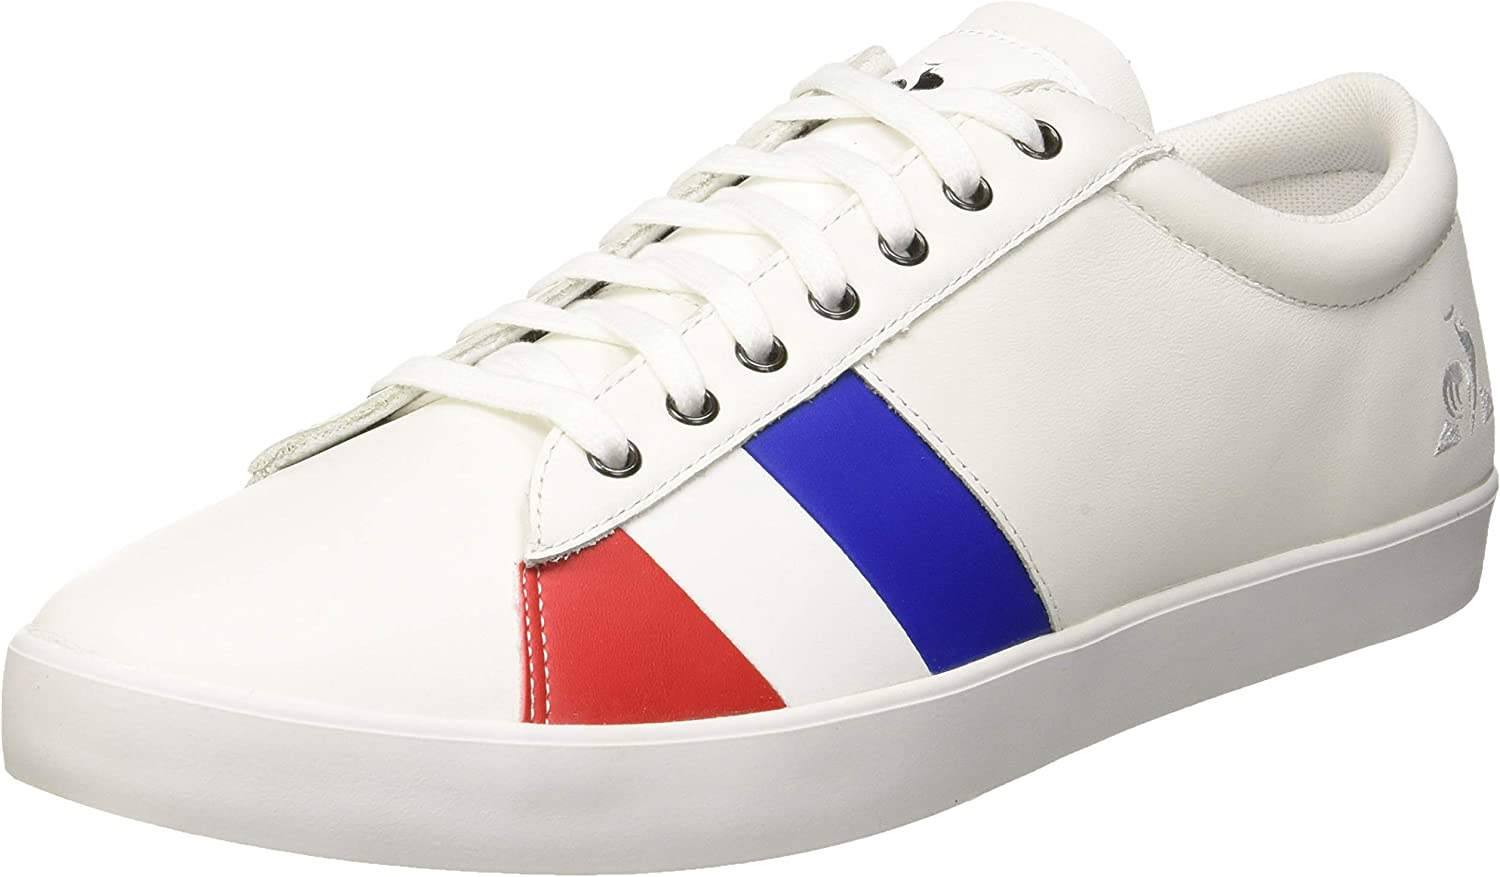 Le Coq Sportif Men's Flag Premium Optical White Trainers